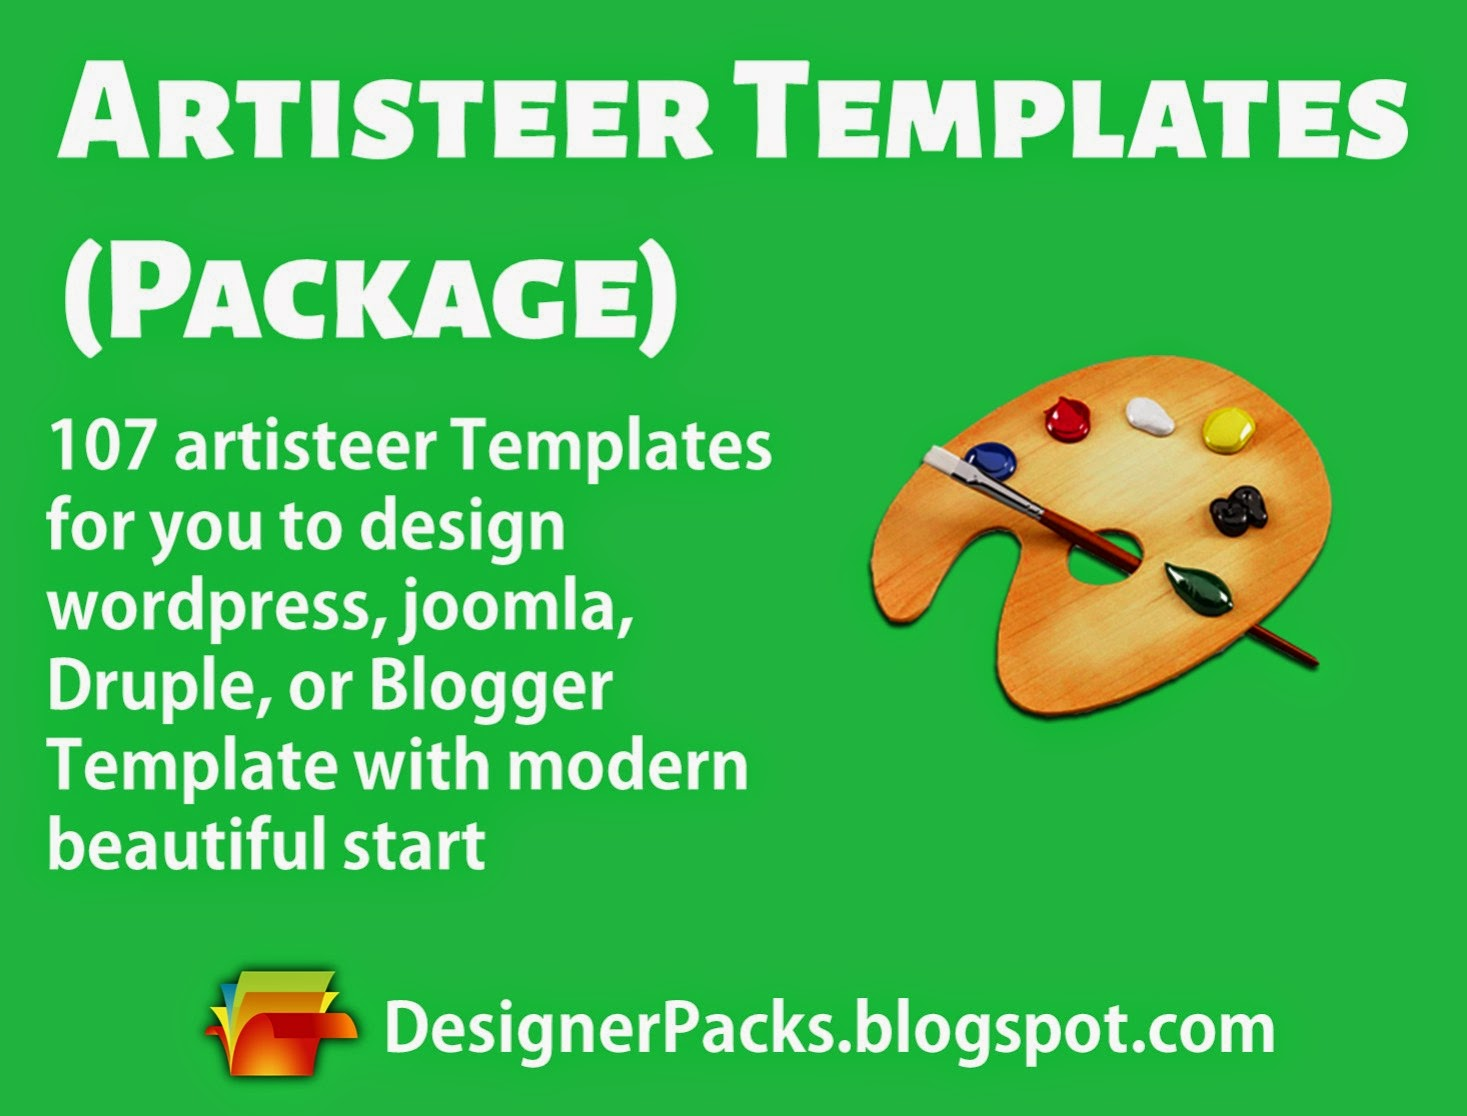 Hi Every One This Pack Will Help You Make Very Awsom Designs For Your Website Using Artisteer In All Cms Platforms WordPress Joomla Druple